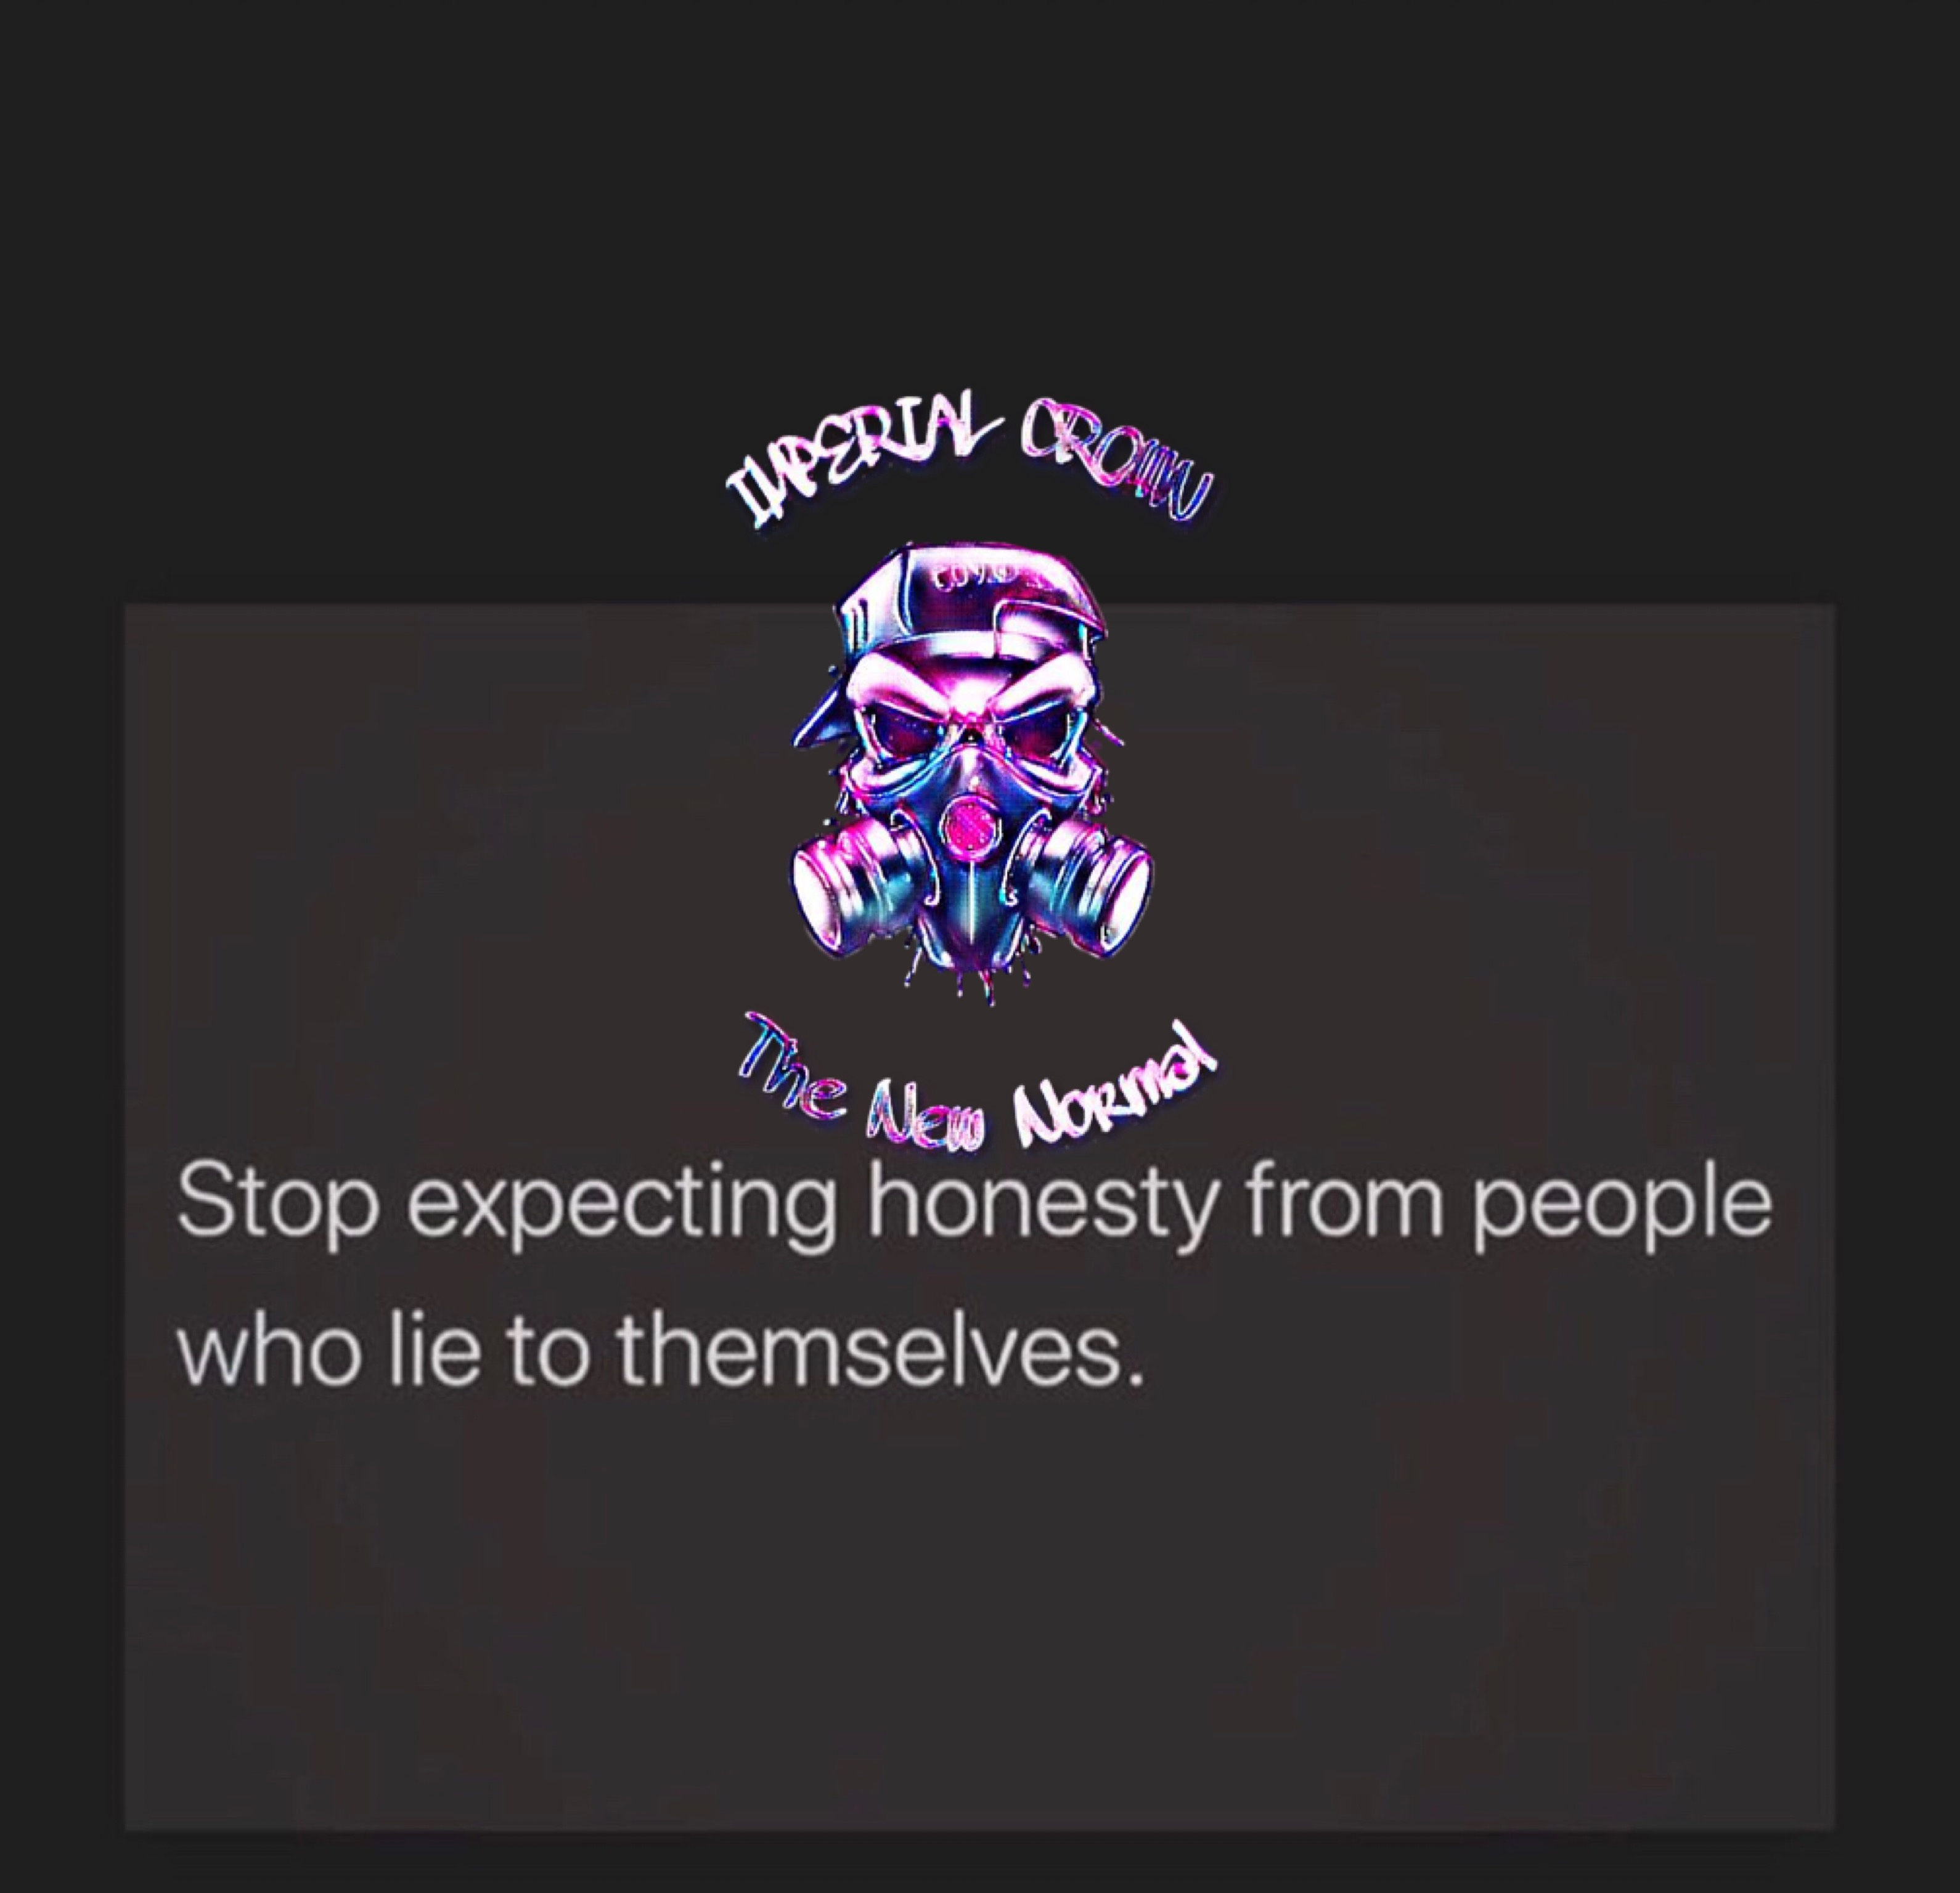 Stop expecting honesty from people who lie to themselves